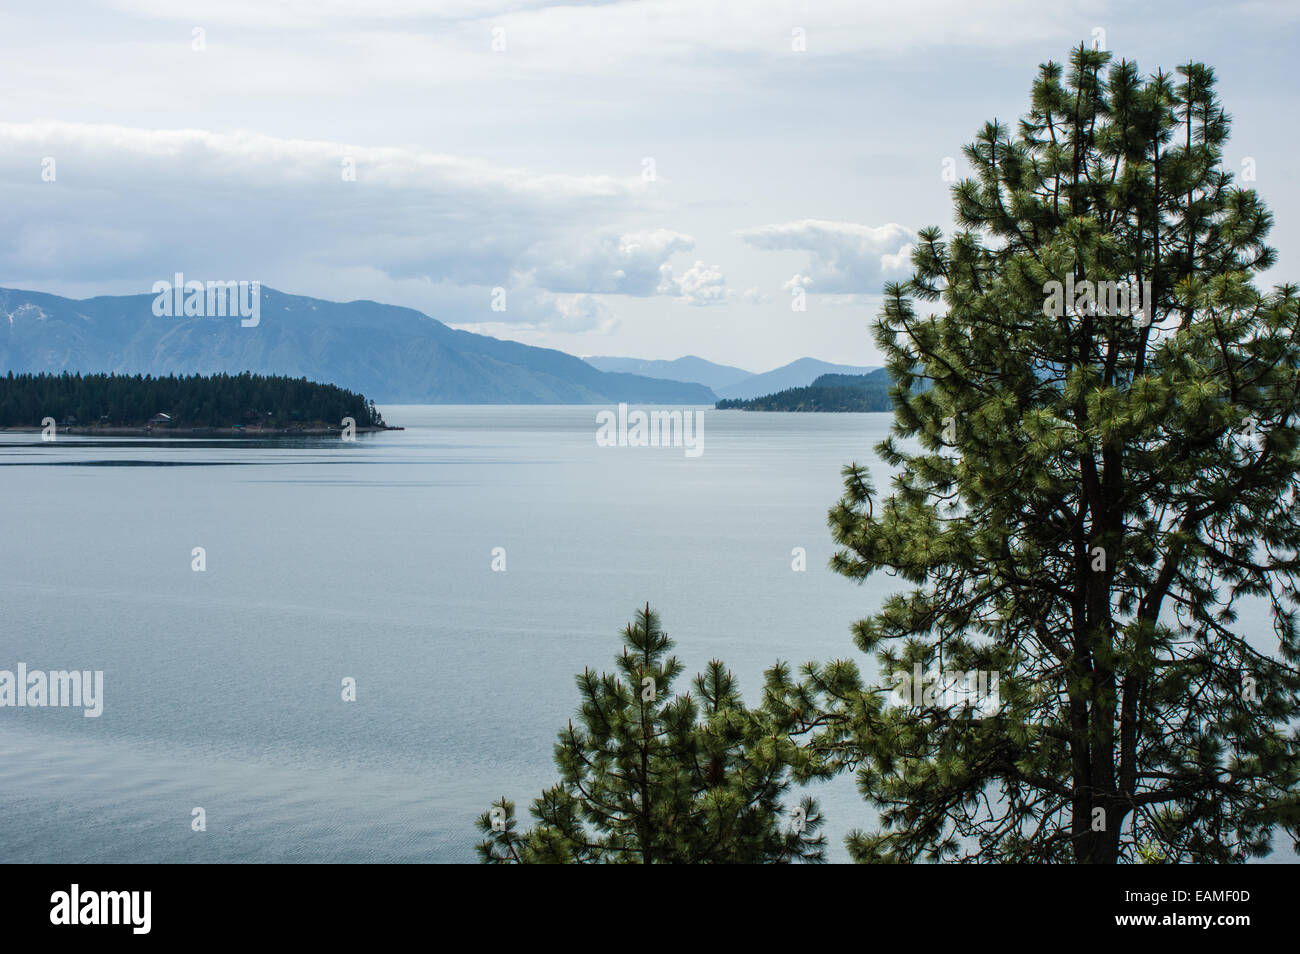 View of Lake Pend Oreille with trees adn mountains.  Hope, Idaho - Stock Image